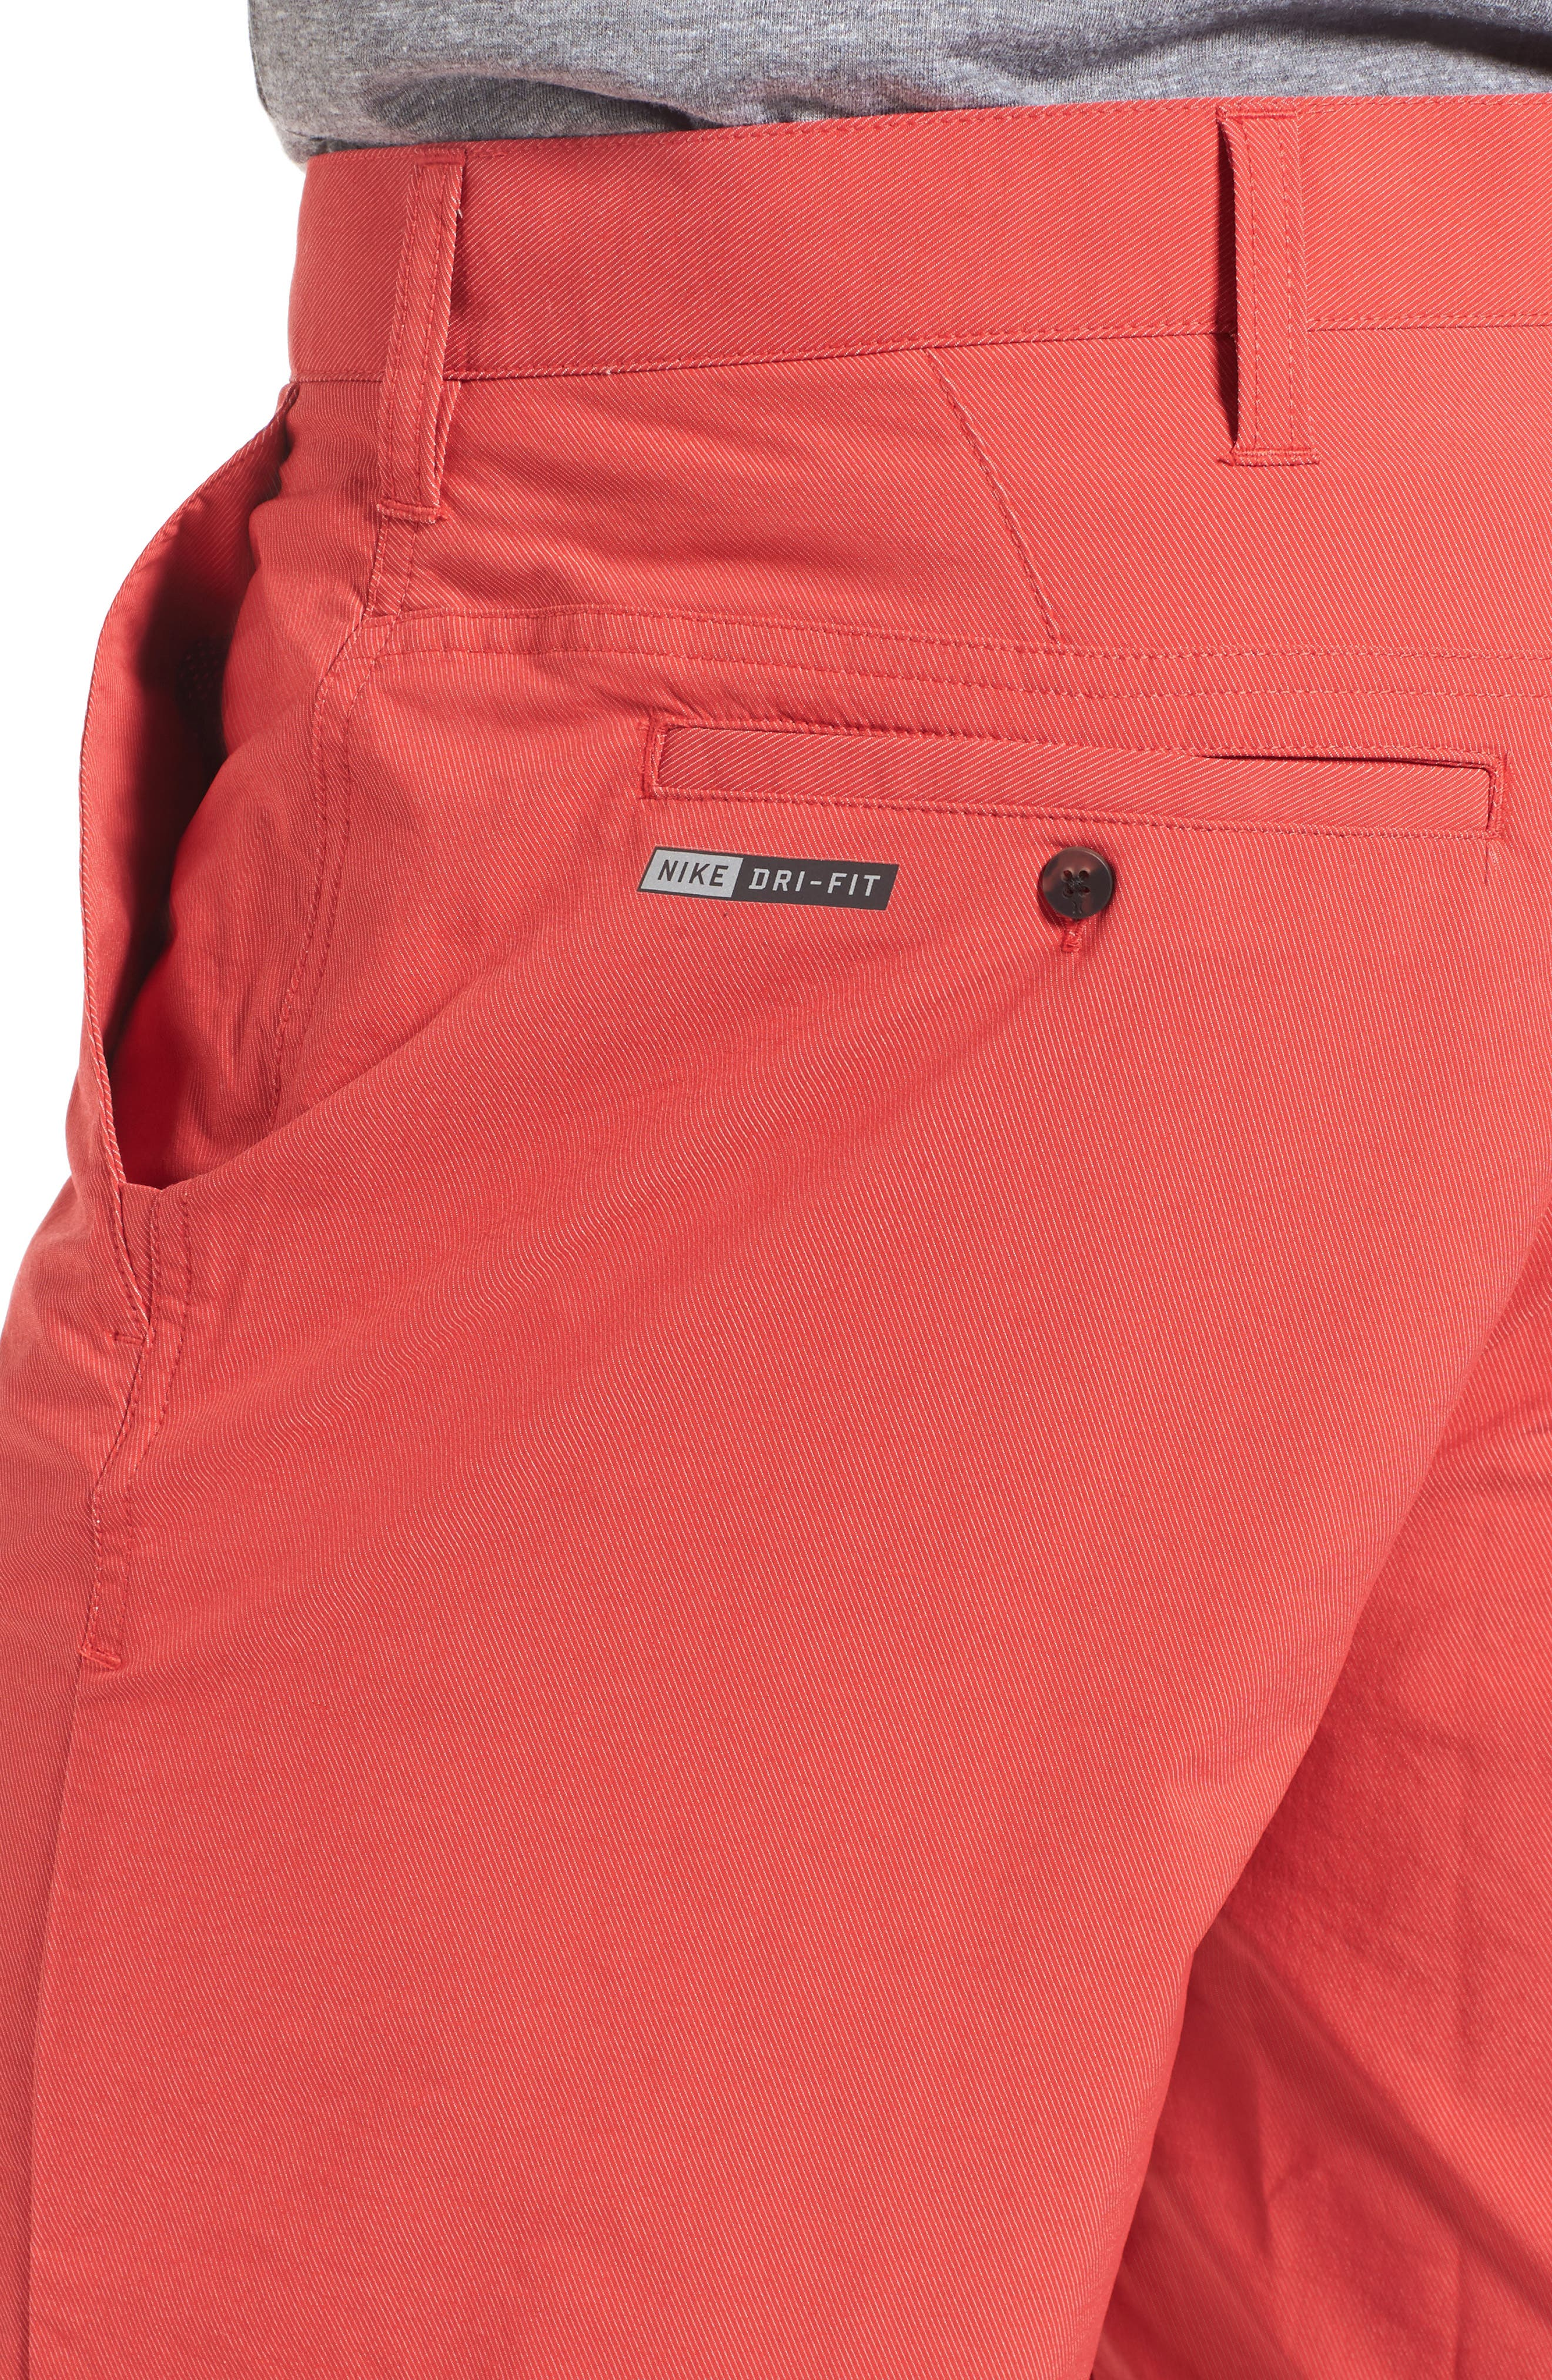 'Dry Out' Dri-FIT<sup>™</sup> Chino Shorts,                             Alternate thumbnail 194, color,